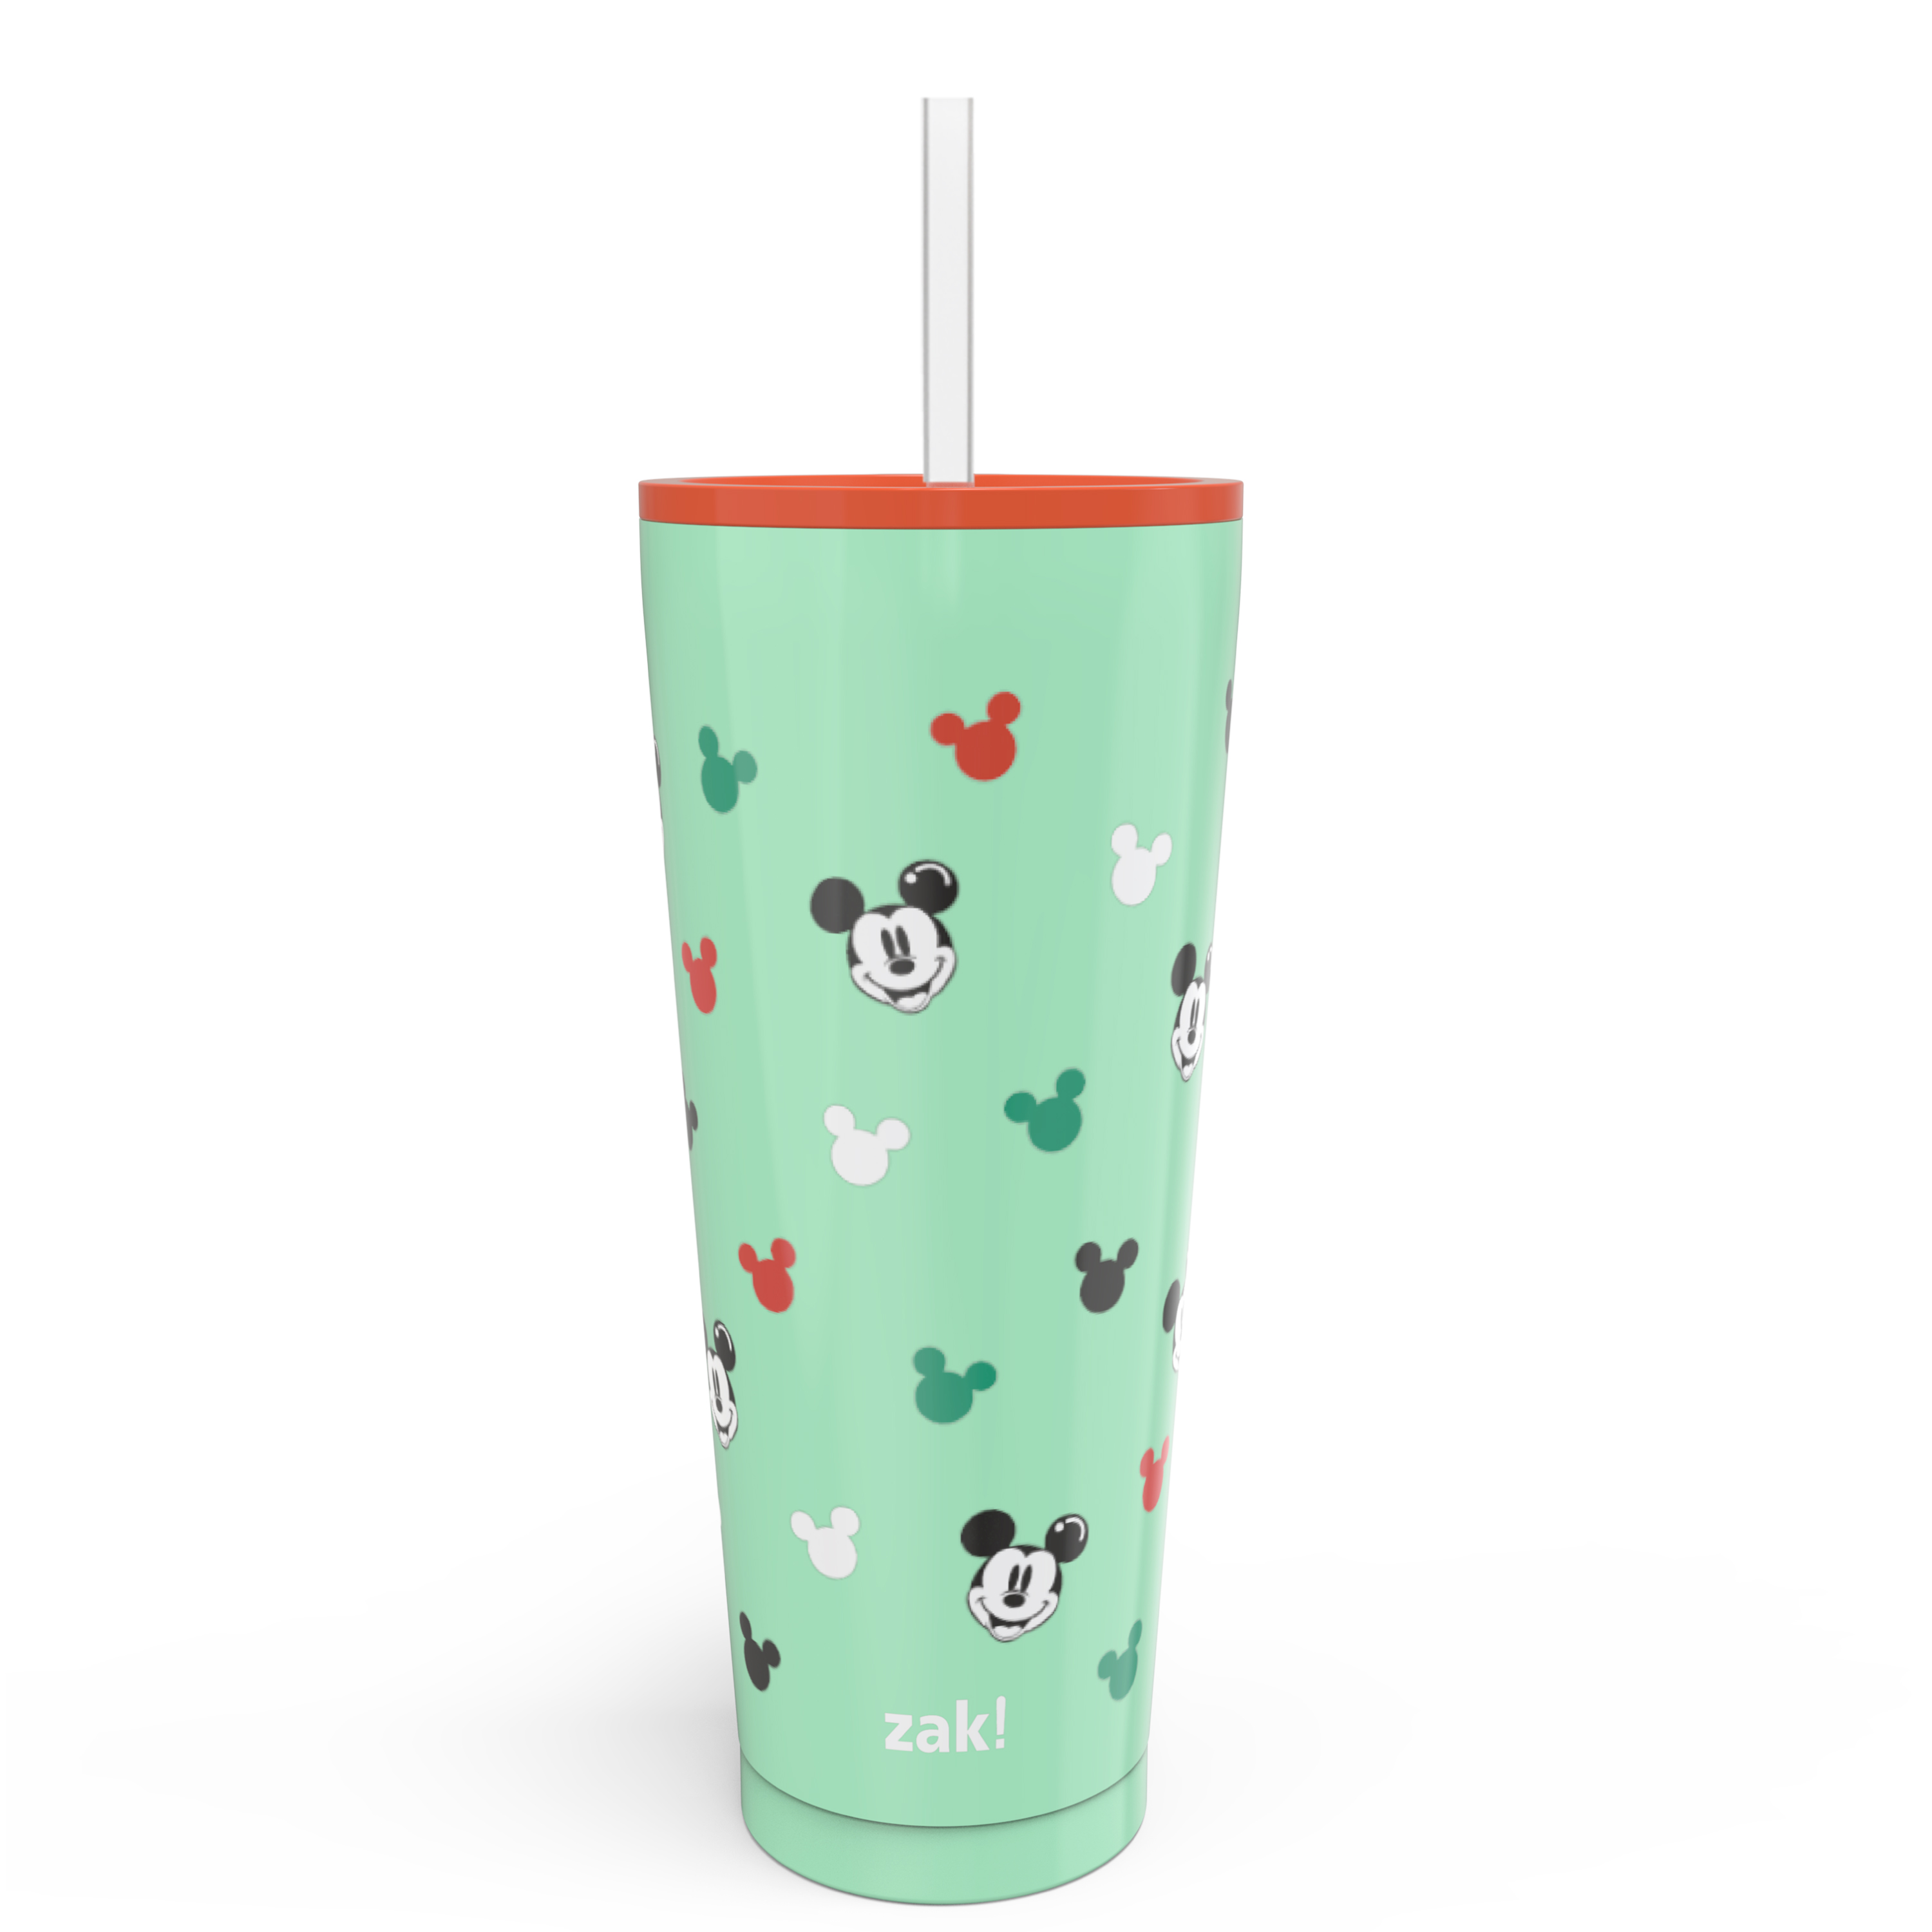 Disney 25 ounce Reusable Water Bottle, Mickey Mouse image